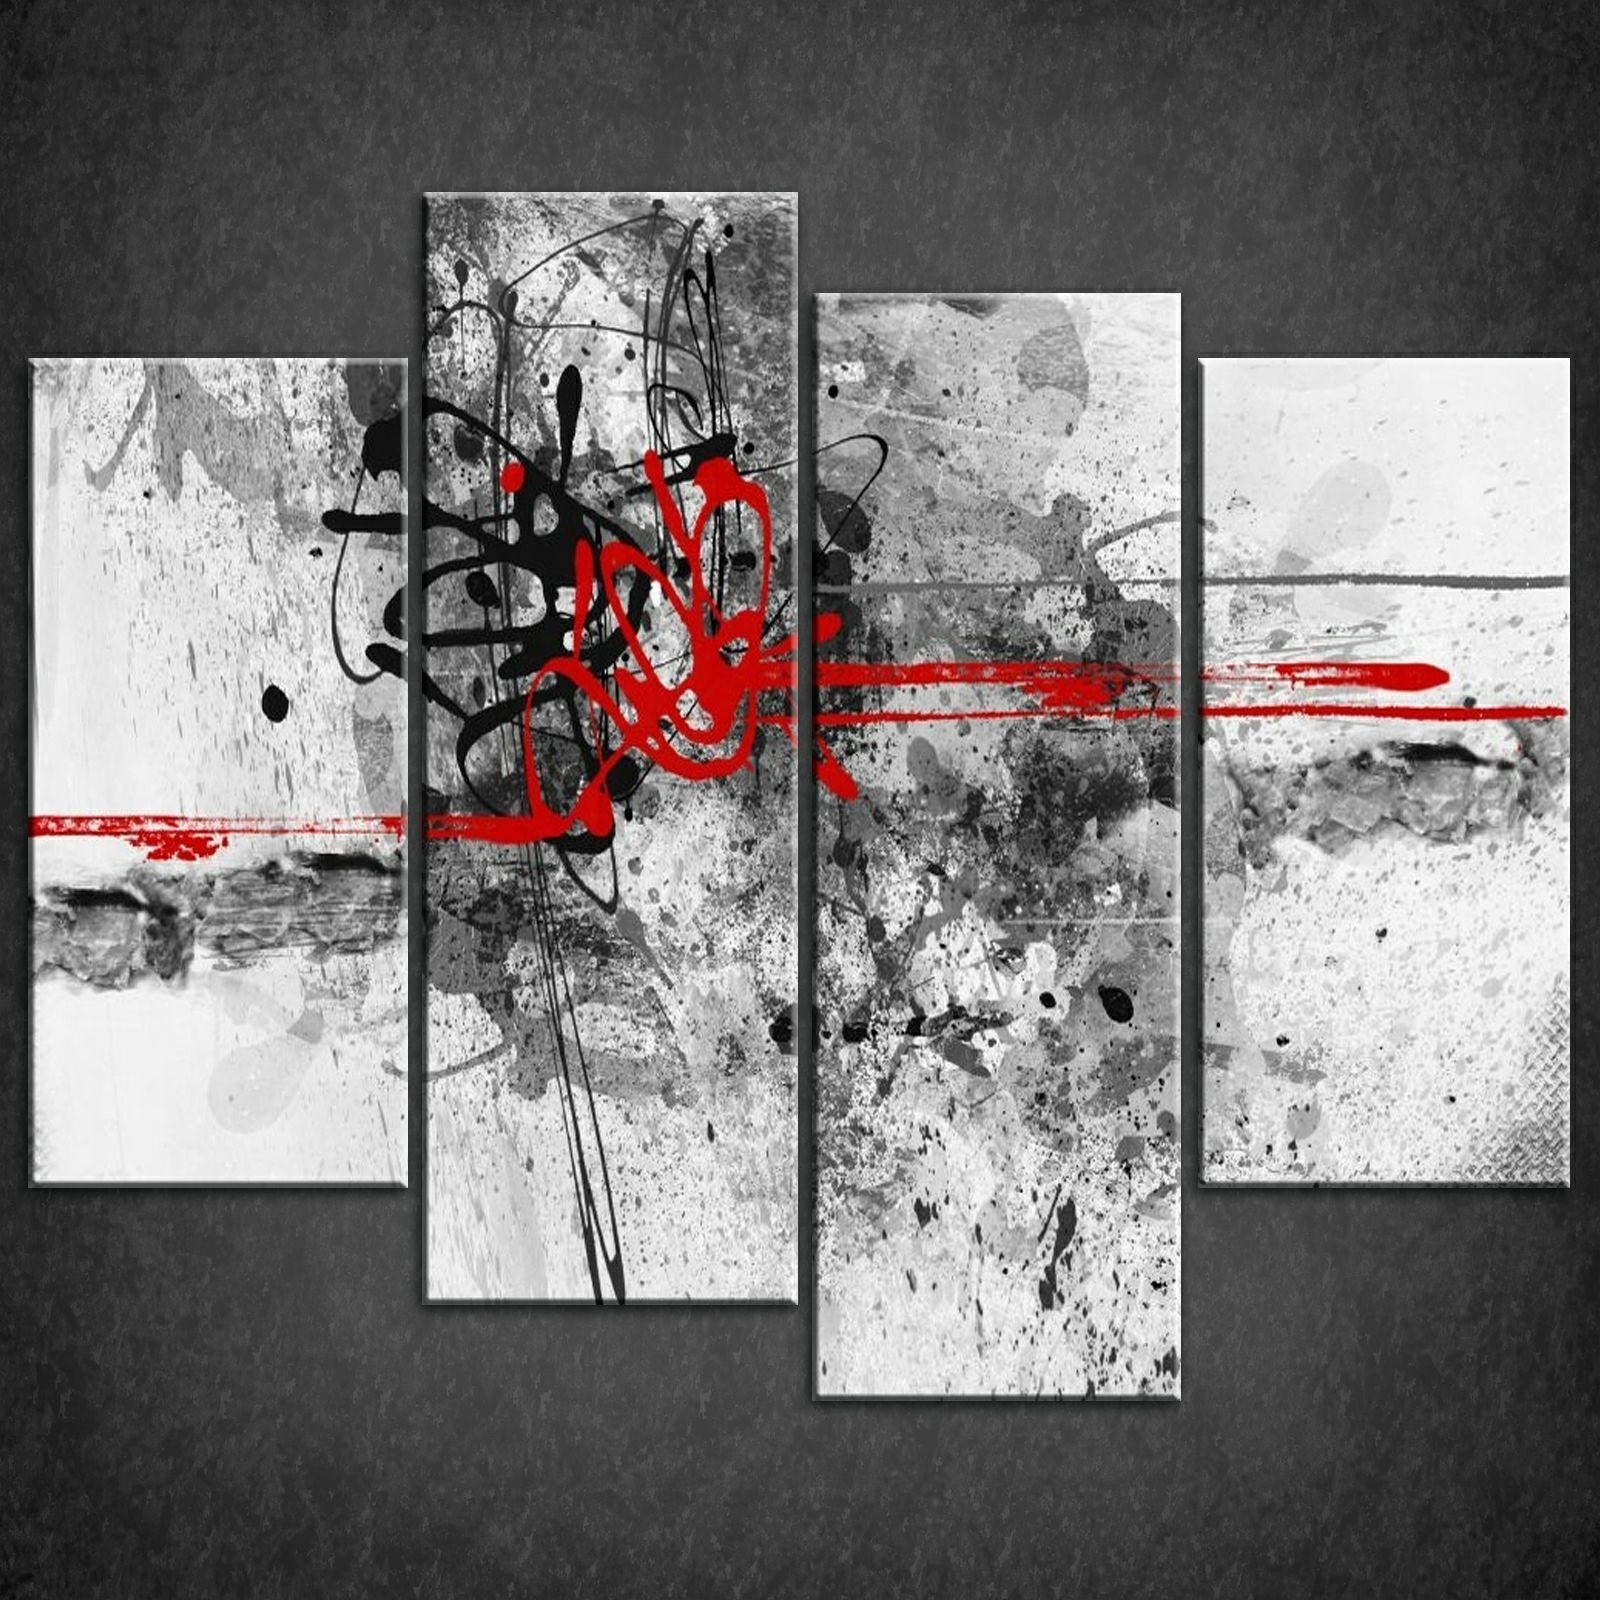 Wall Art Designs: Abstract Canvas Wall Art Abstract Canvas Wall Inside 2017 Abstract Canvas Wall Art (View 15 of 15)